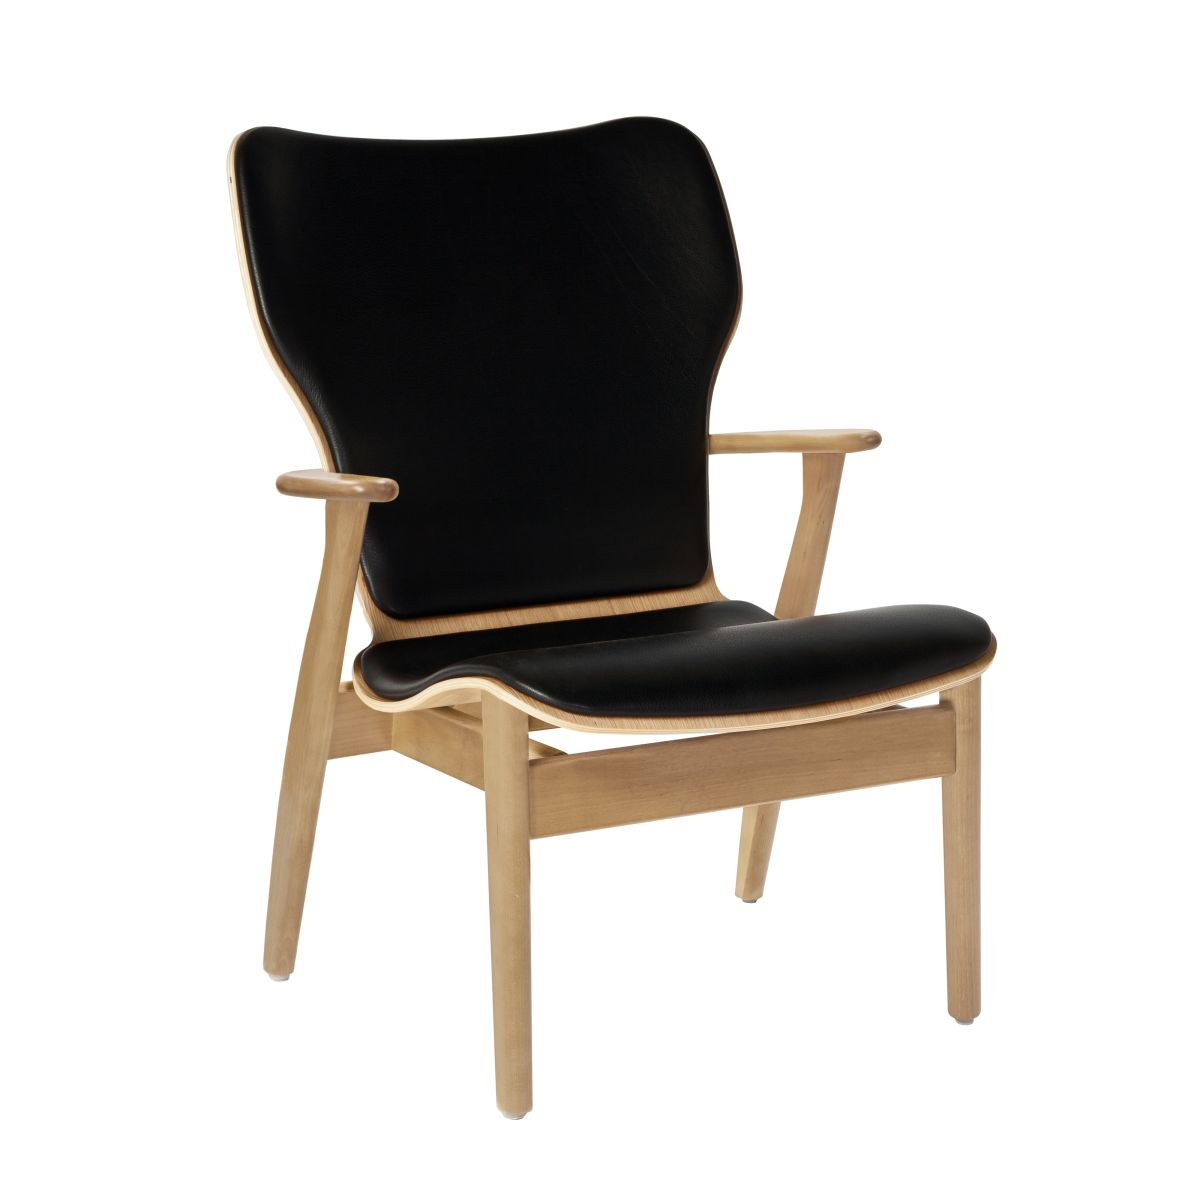 Domus-Lounge-Chair-clear-laquered-birch_leather-upholstery-2561116